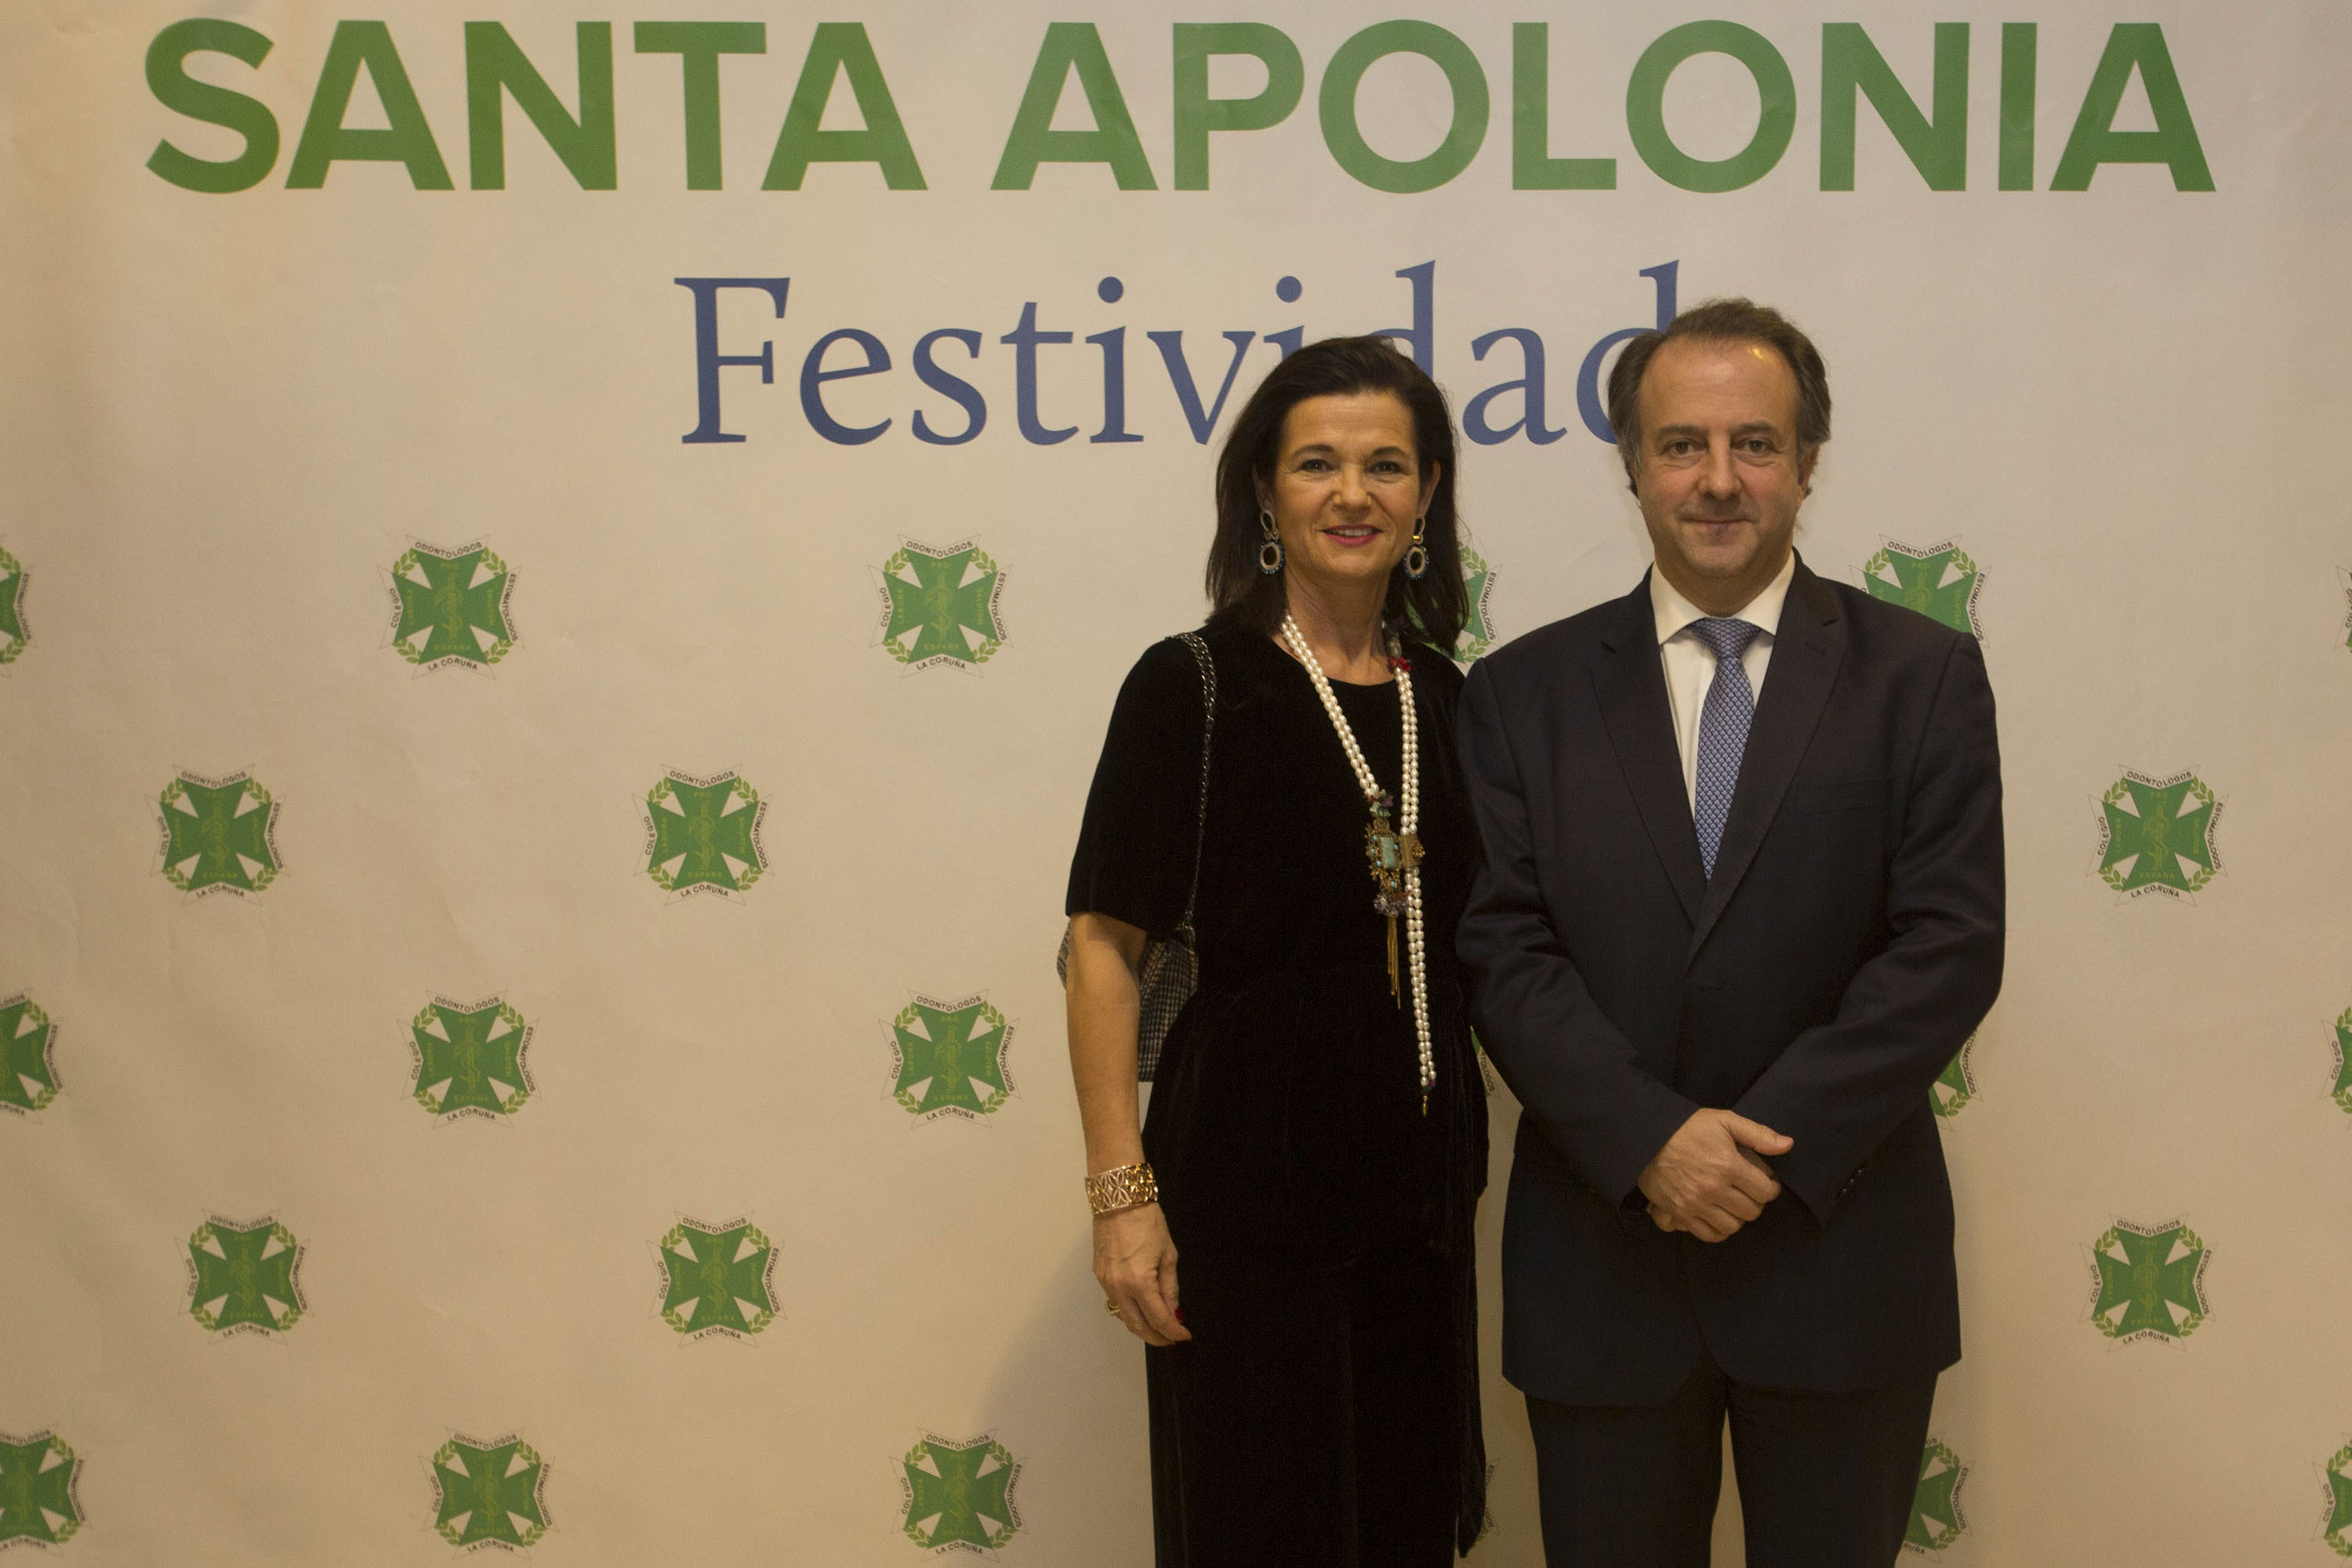 ICOEC_SantaApolonia2019_photocall-_0001__MG_0463